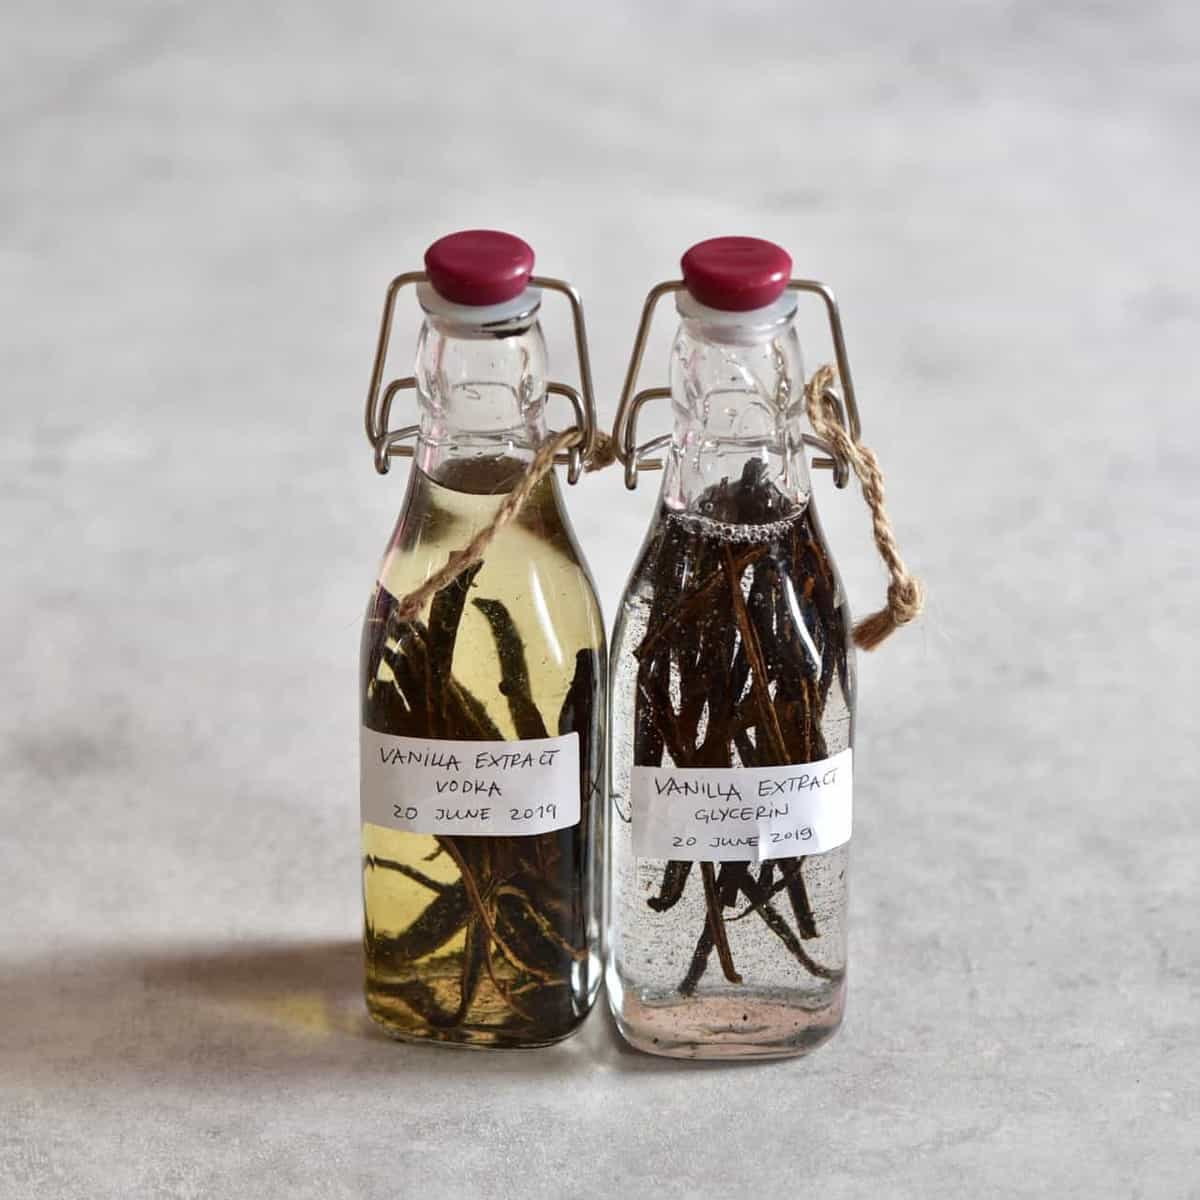 homemade two ingredient DIY vanilla extract